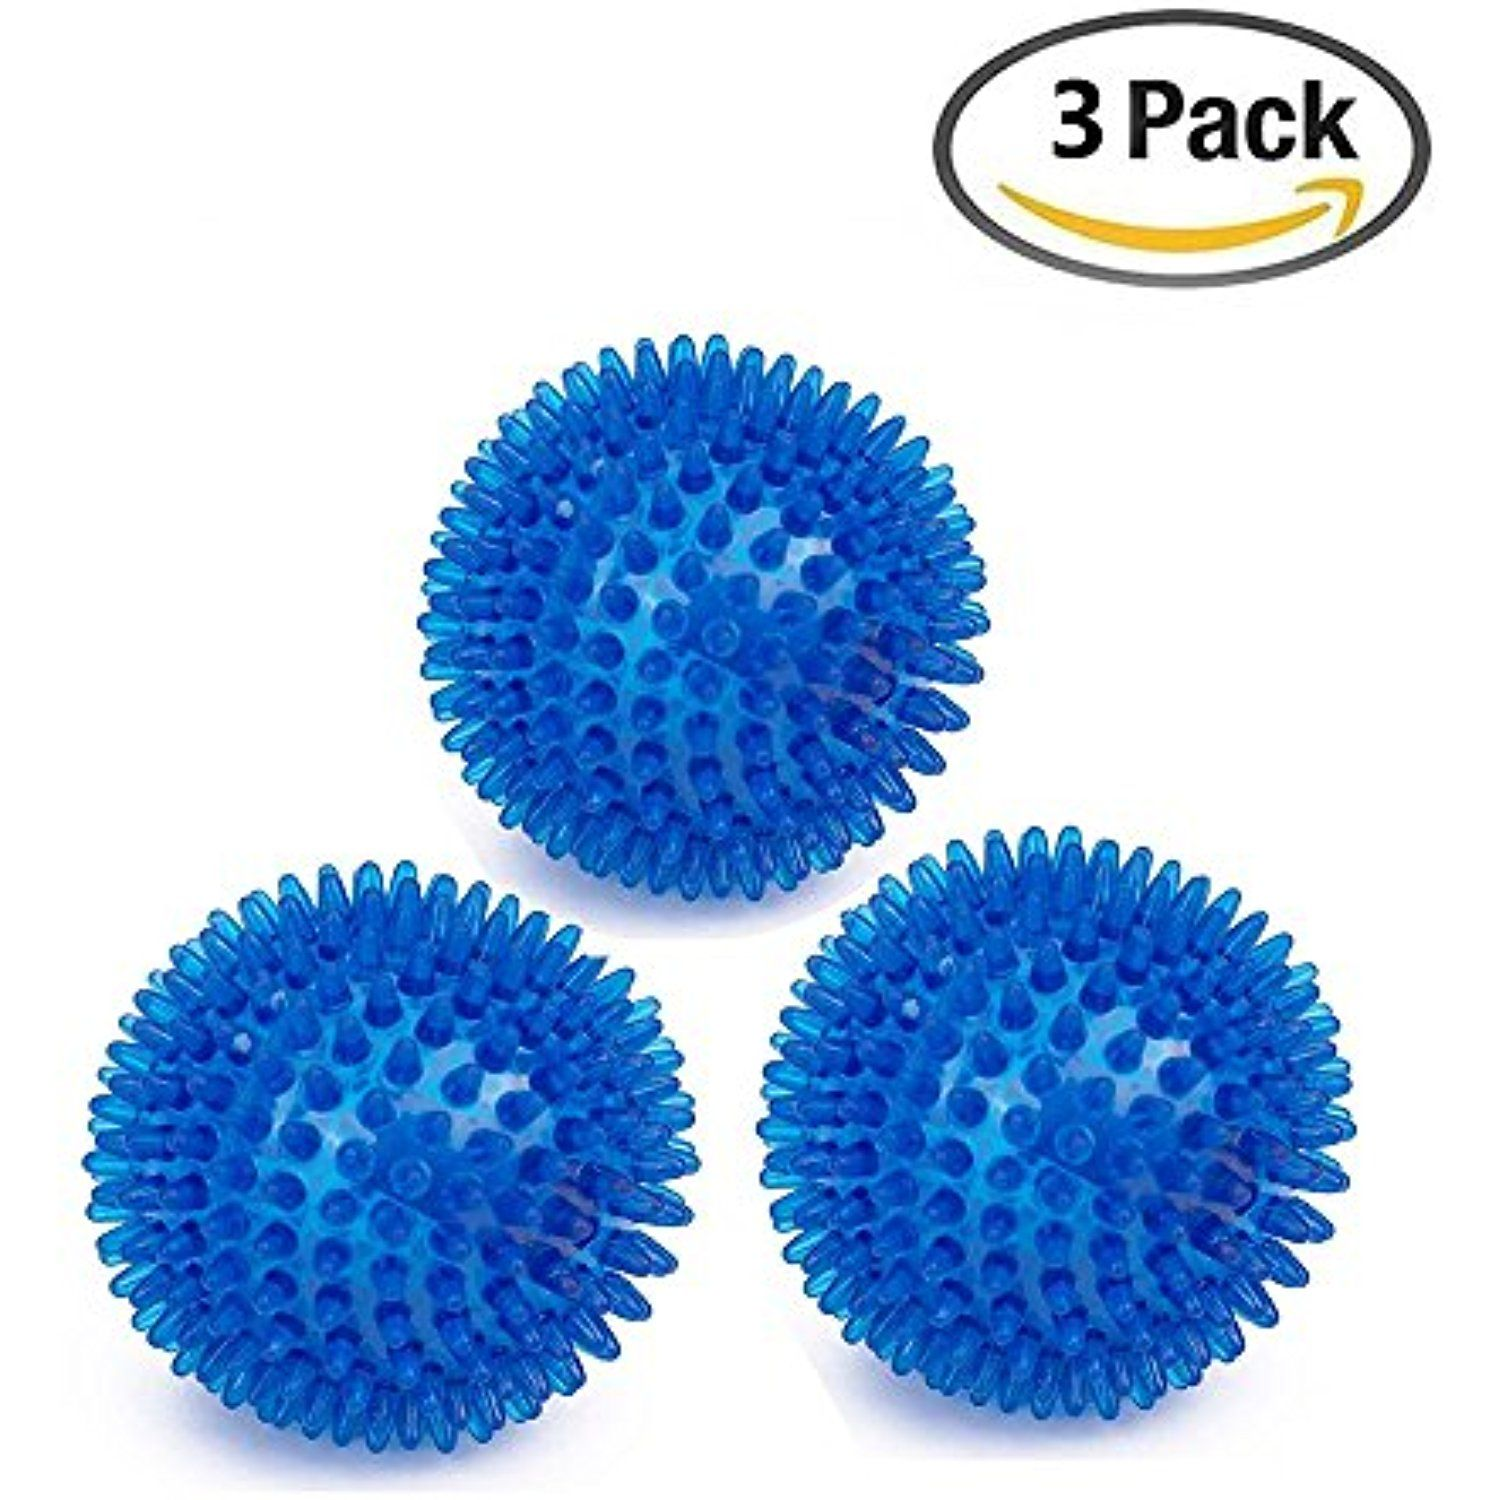 Eetoys Tpr Bouncy Floating Teeth Cleaning Spiky Ball Squeaky Toy